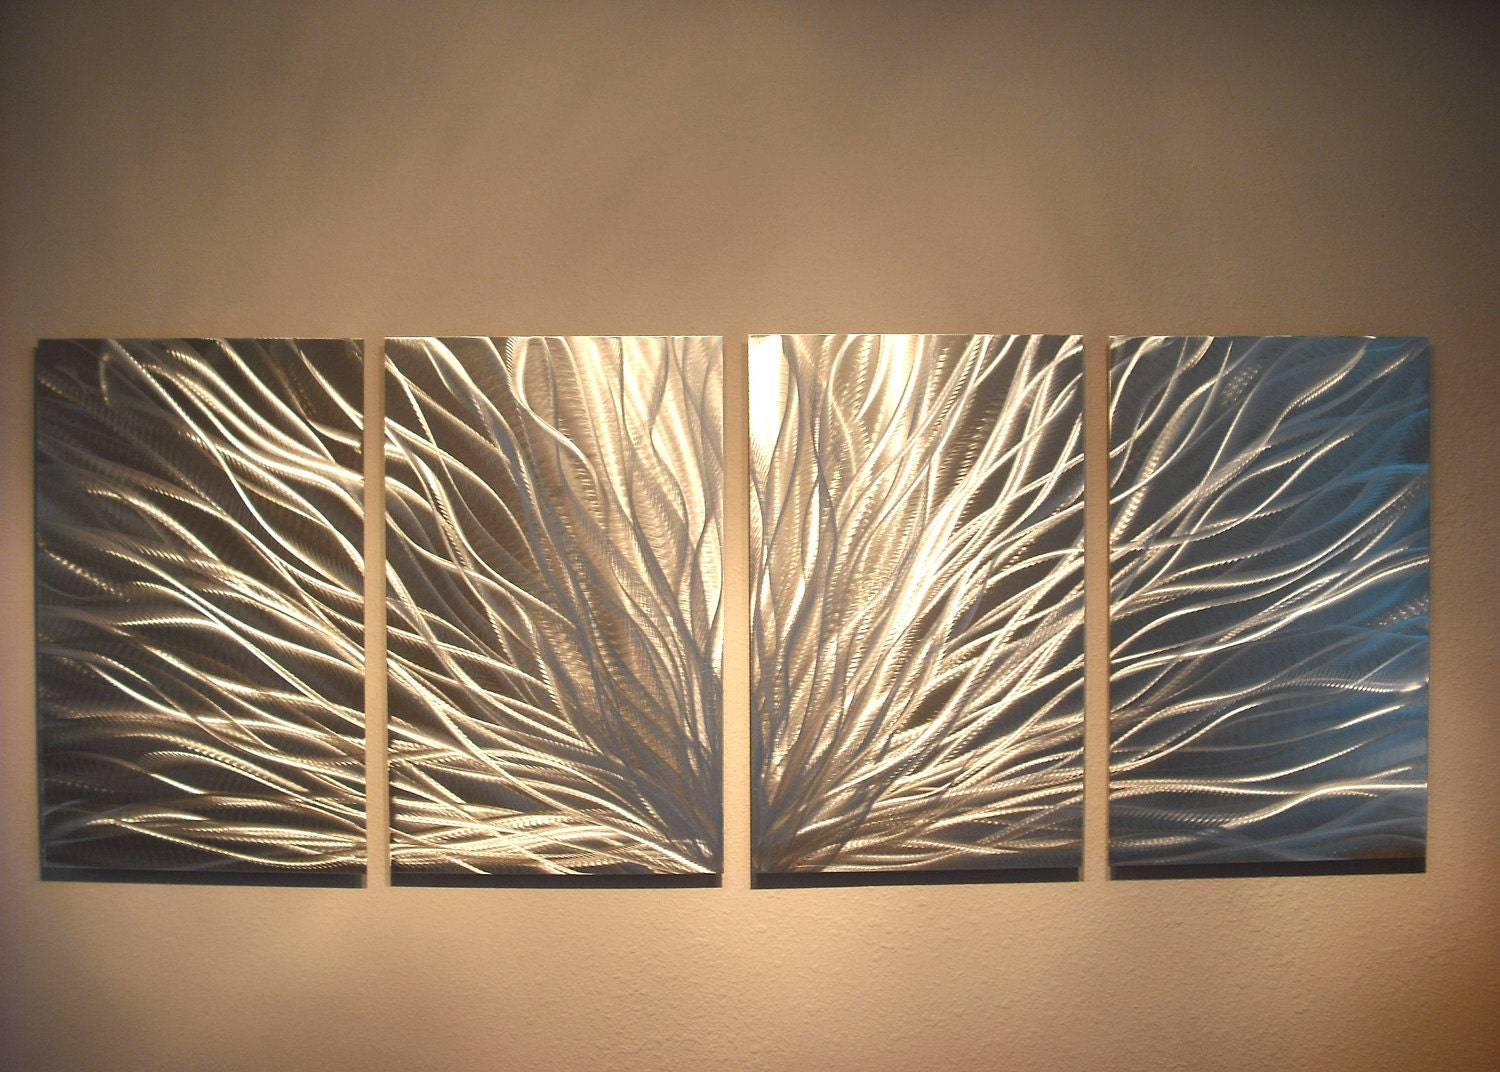 Contemporary Wall Decor Metal Wall Art Decor Abstract Aluminum Contemporary Modern